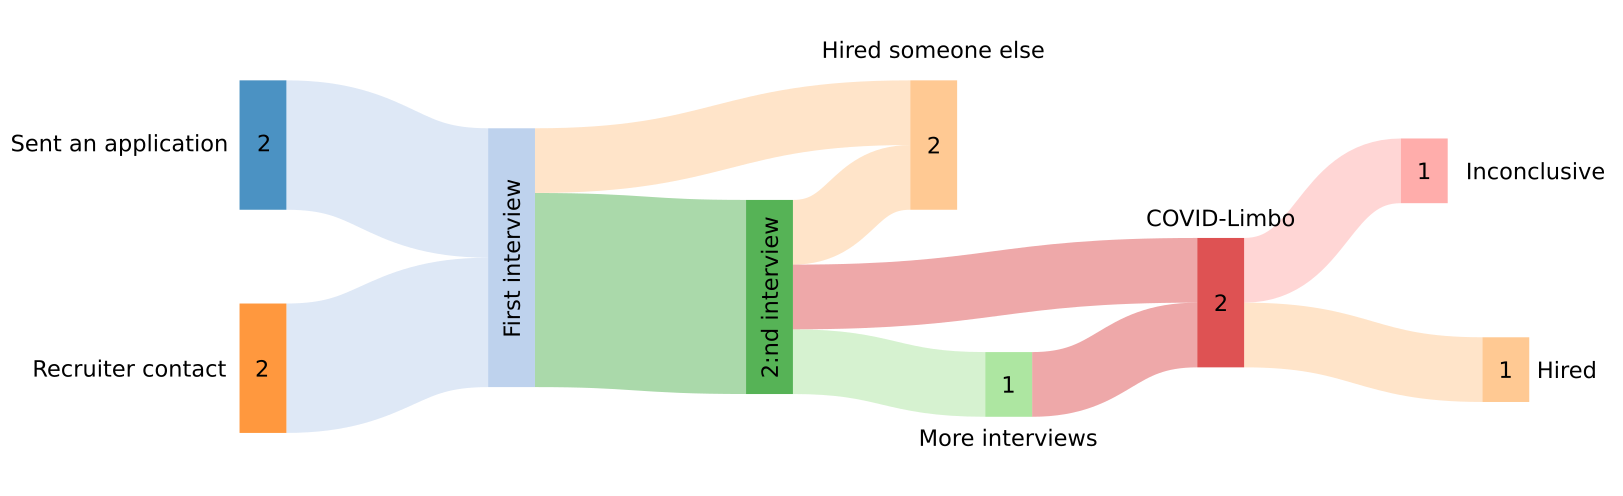 A flow chart of the results of various interviews.